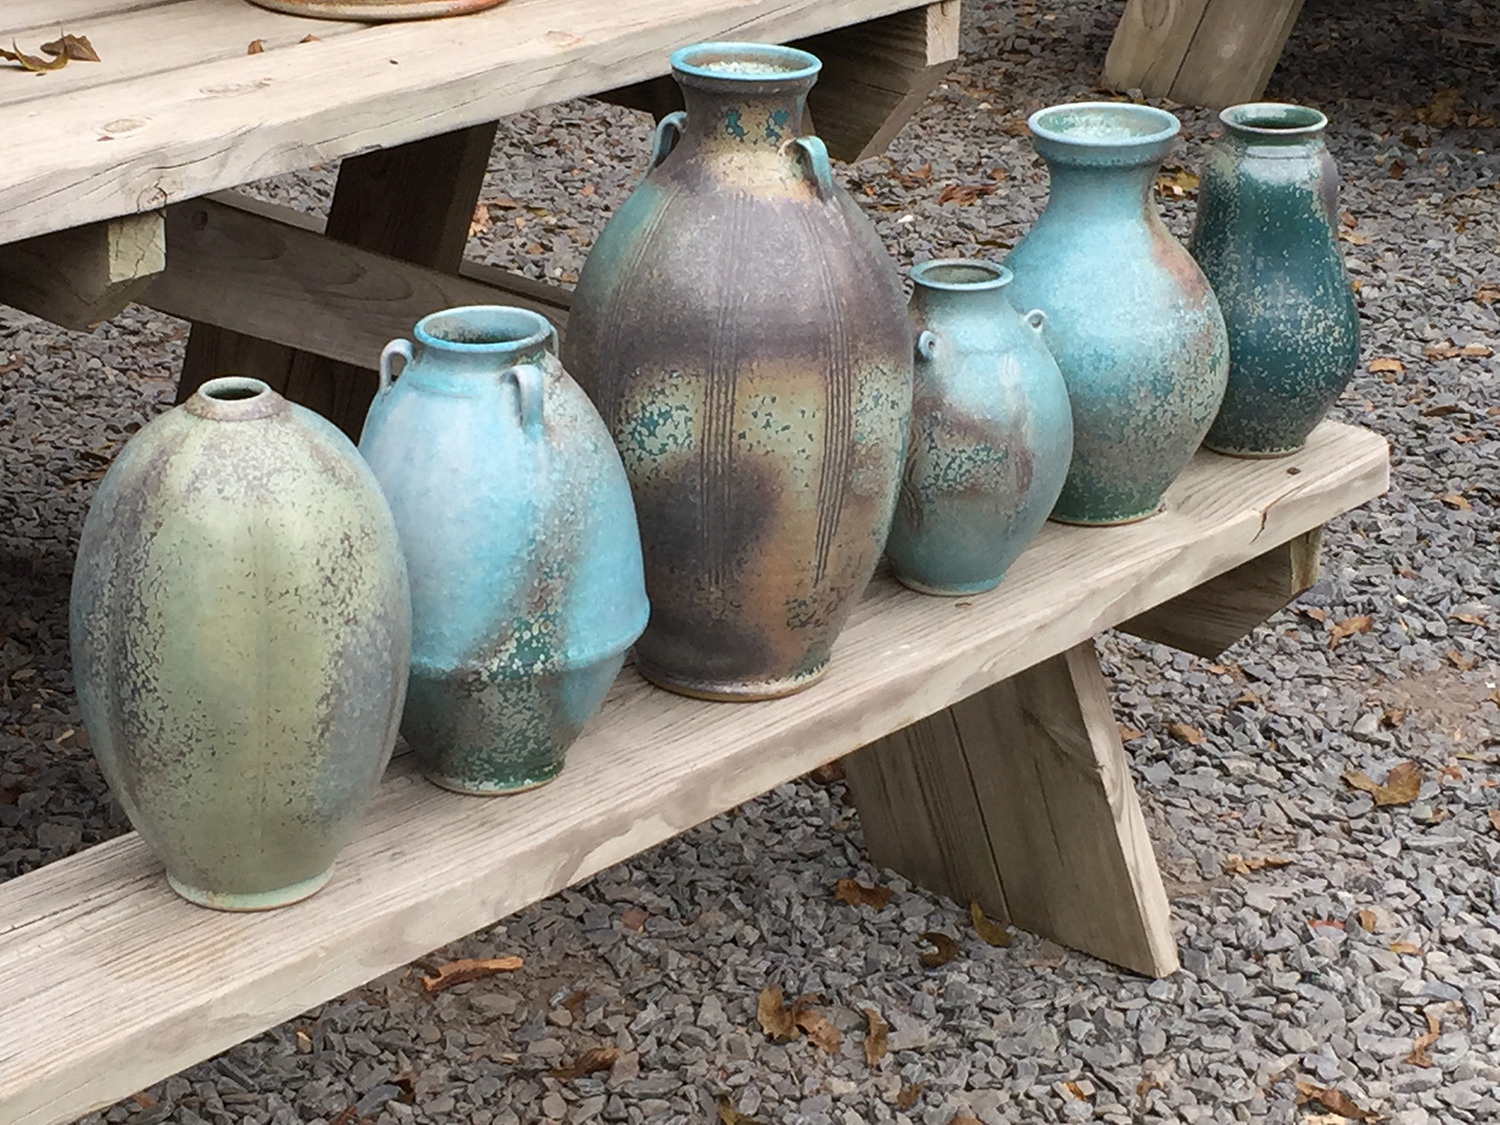 Design Story Works' past project: this website for Ben Owen Pottery. Click here to visit the site. Photo of wood-fired vessels by Ben Owen in Seagrove, North Carolina © 2017 Design Story Works LLC